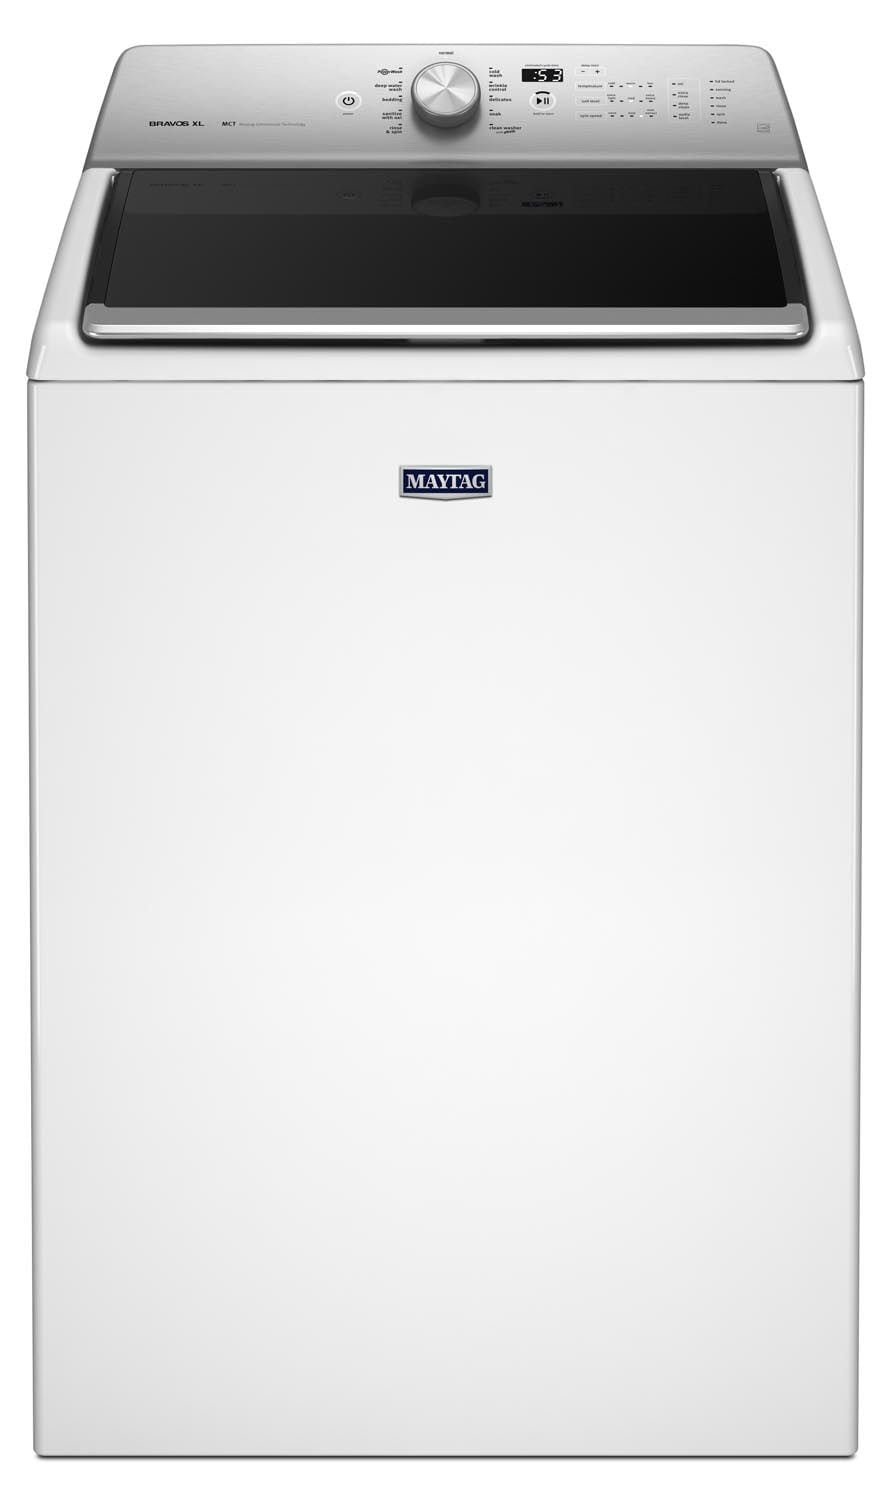 Maytag White Top-Load Washer (6.1 Cu. Ft. IEC) - MVWB835DW